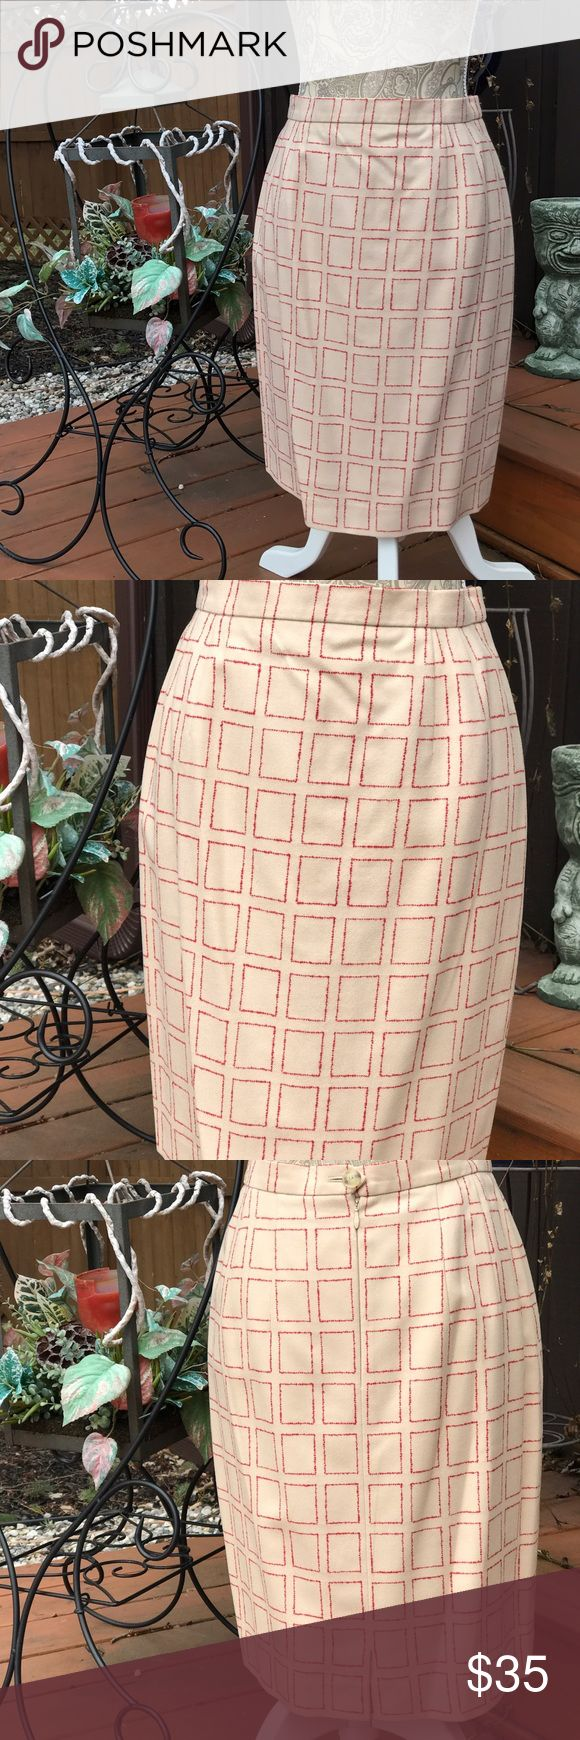 VTG LOUIS FERAUD PENCIL SKIRT IVORY W/RED SIZE 6 VINTAGE LOUIS FERAUD WOMEN'S PENCIL LINED SKIRT COLOR IVORY WITH RED DESIGN SIZE 6.  THE WHITE TAG ON INSIDE OF SKIRT IS WORN. THE SKIRT IS MADE OF 99% VIRGIN WOOL 1%NYLON, LINING 100% RAYON.  EXCELLENT CONDITION LOUIS FERAUD Skirts Pencil